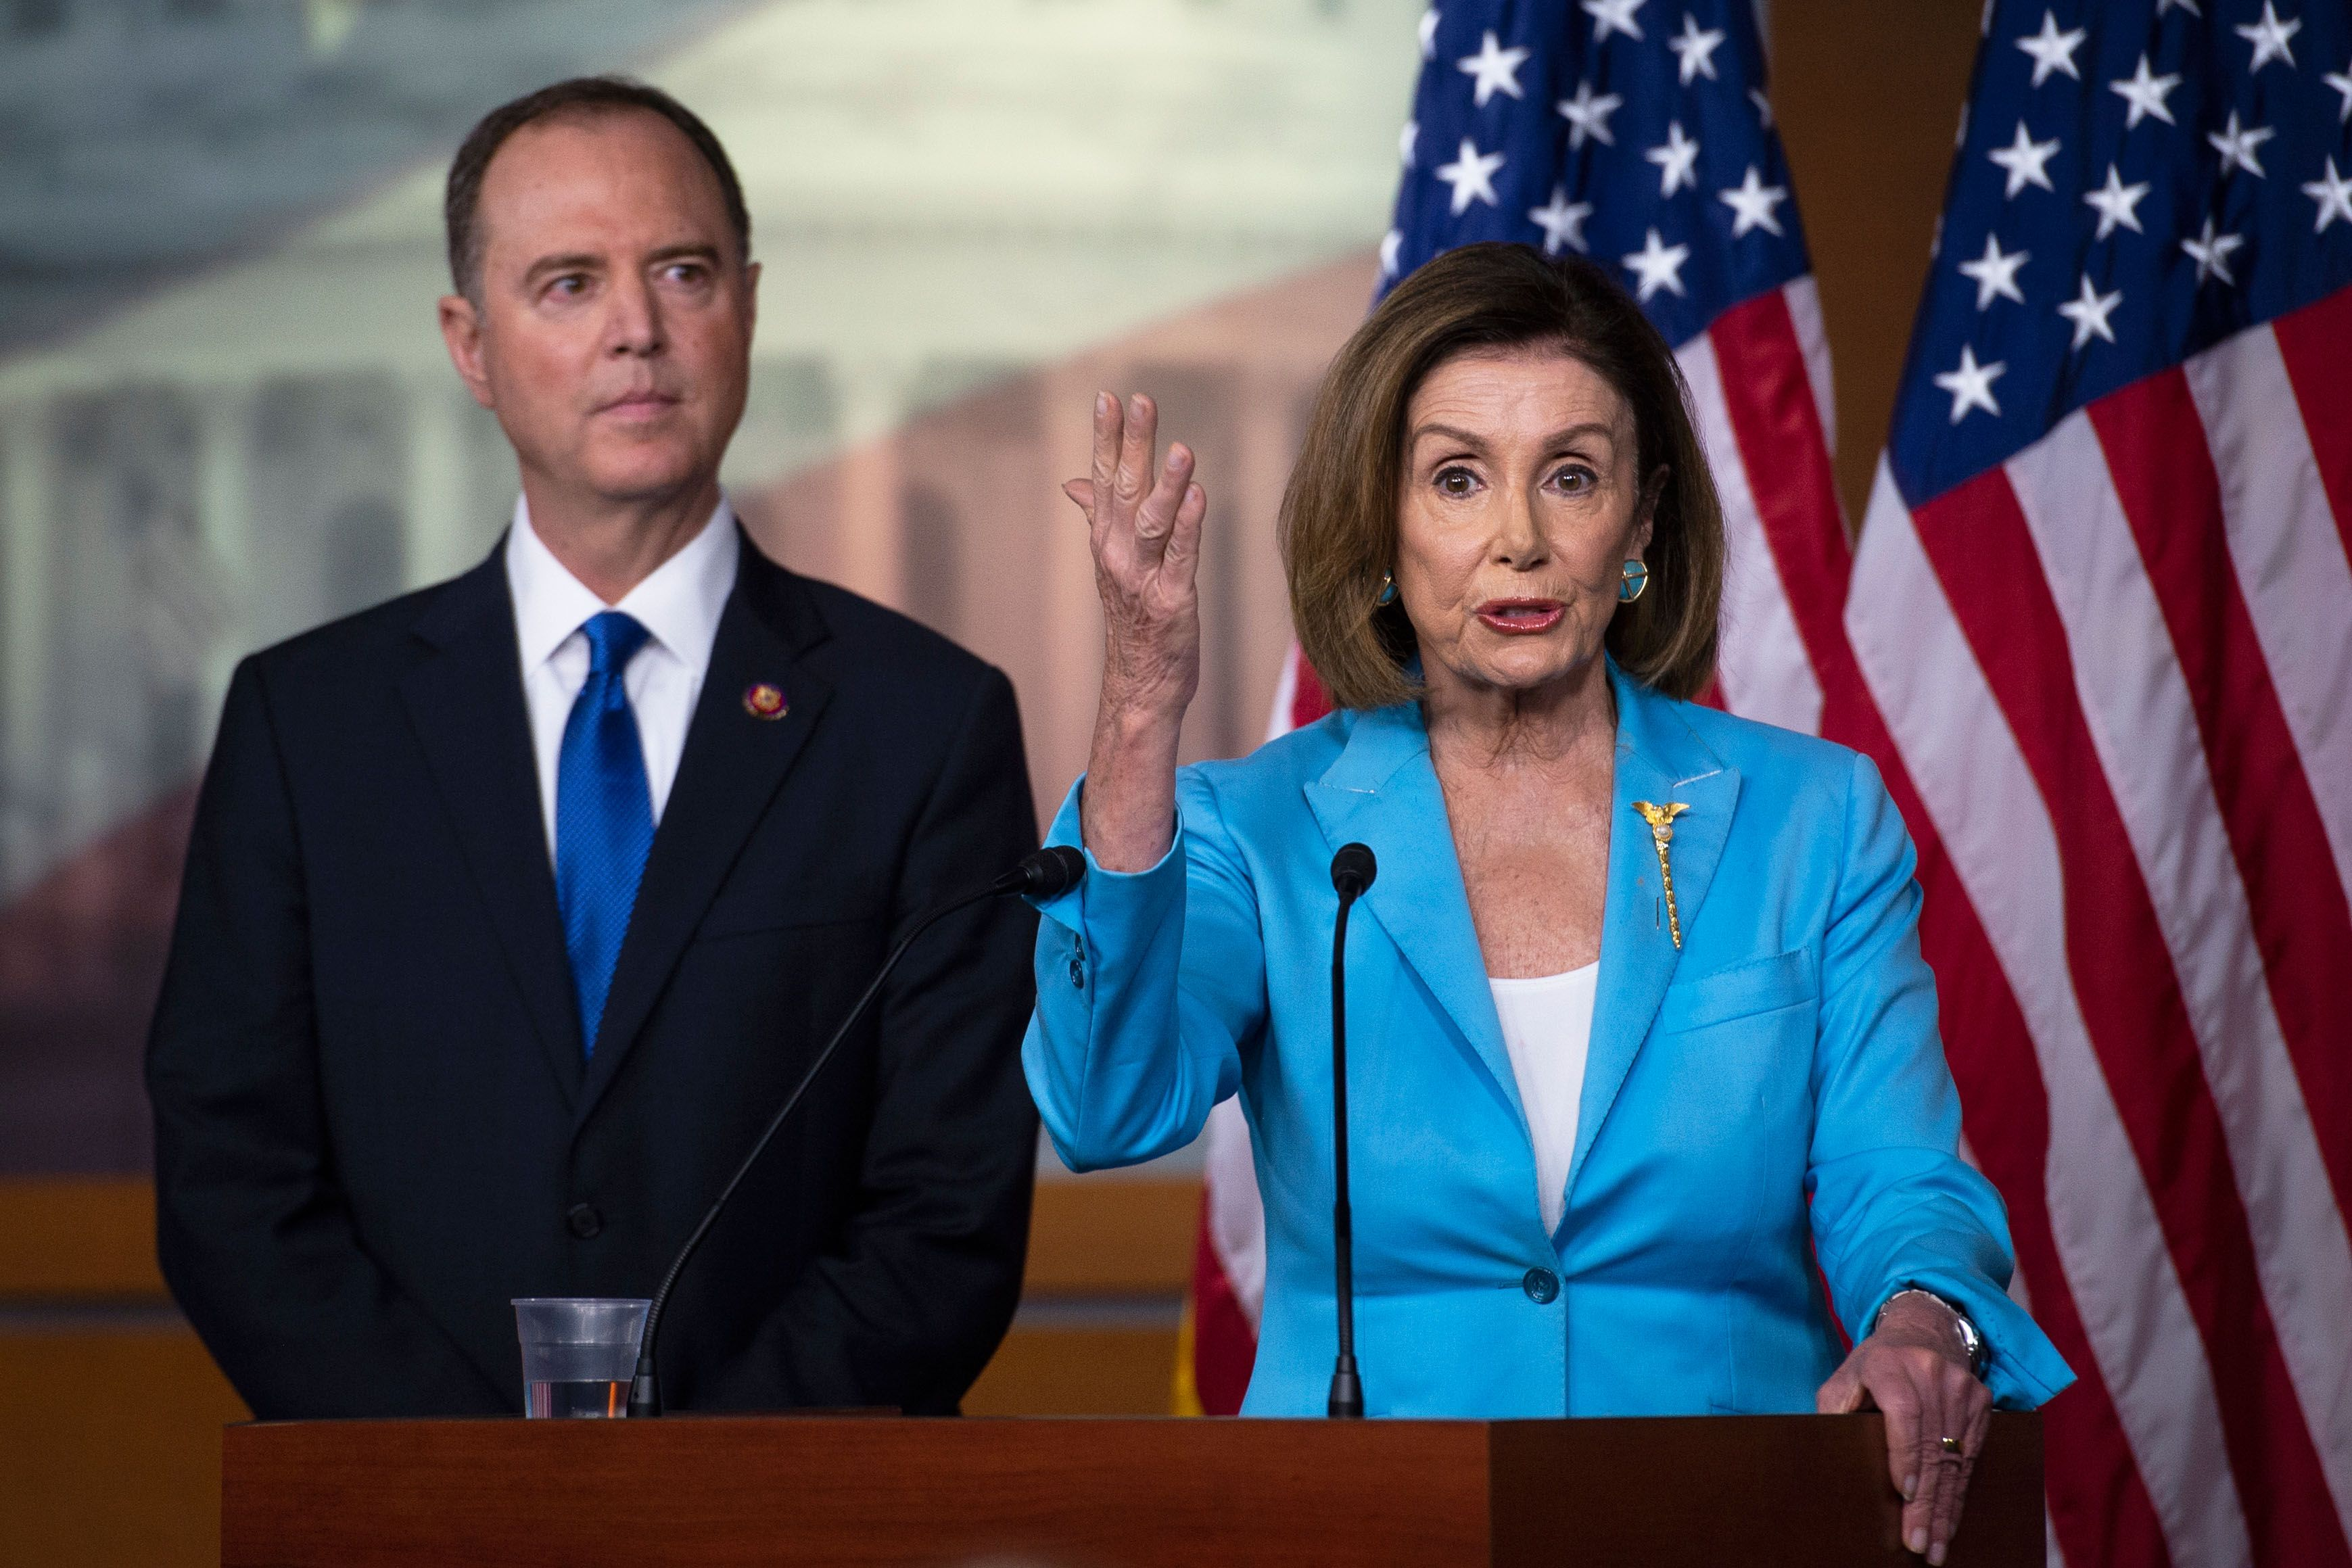 Nancy Pelosi and Adam Schiff Just Provided a Preemptive Autopsy of Trump's Presidency*